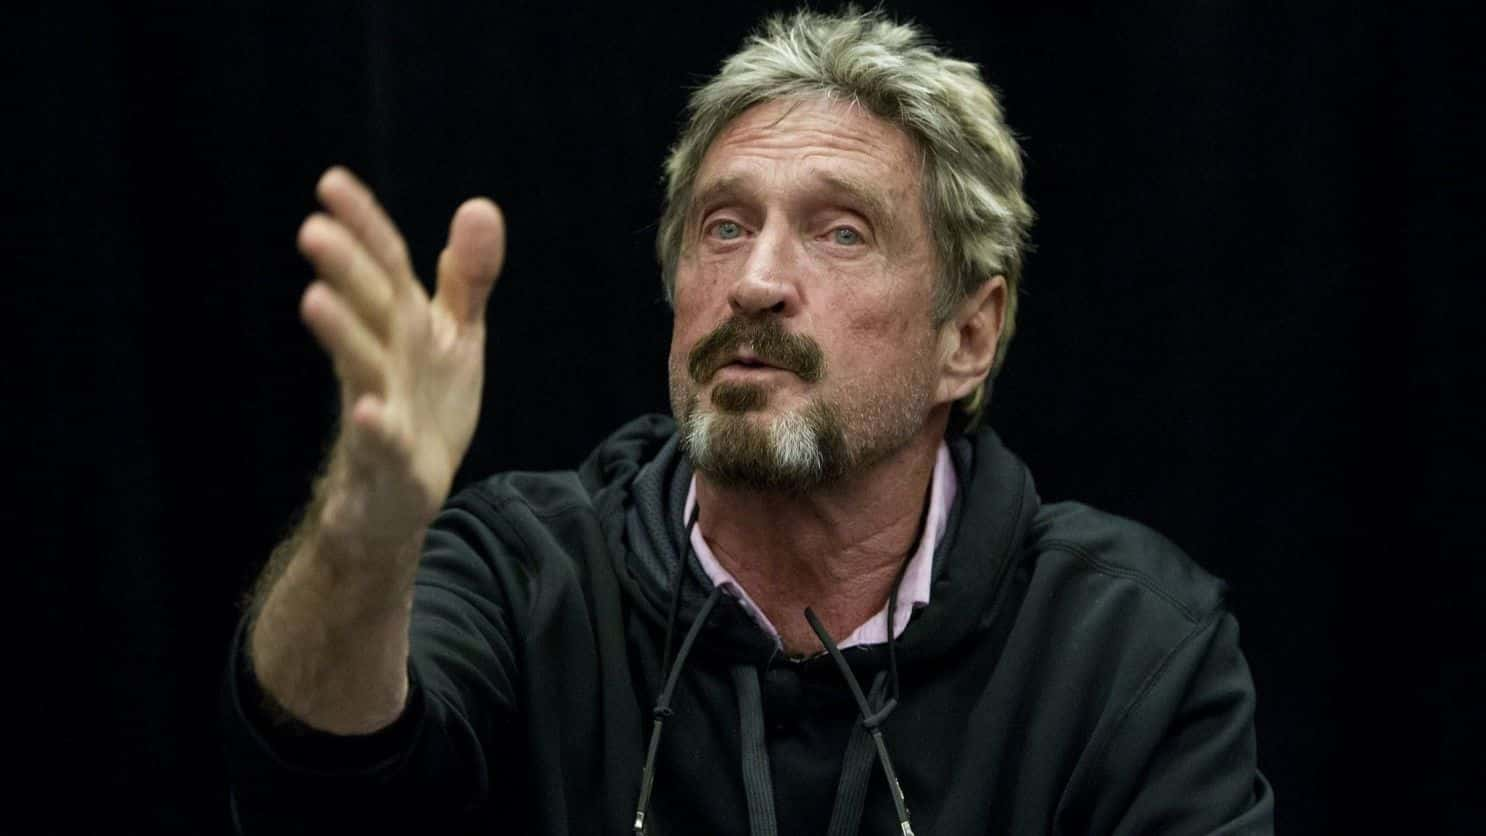 Software Pioneer John McAfee Indicted of $13 Million Charges With Crypto Scam Involving Dogecoin (DOGE)